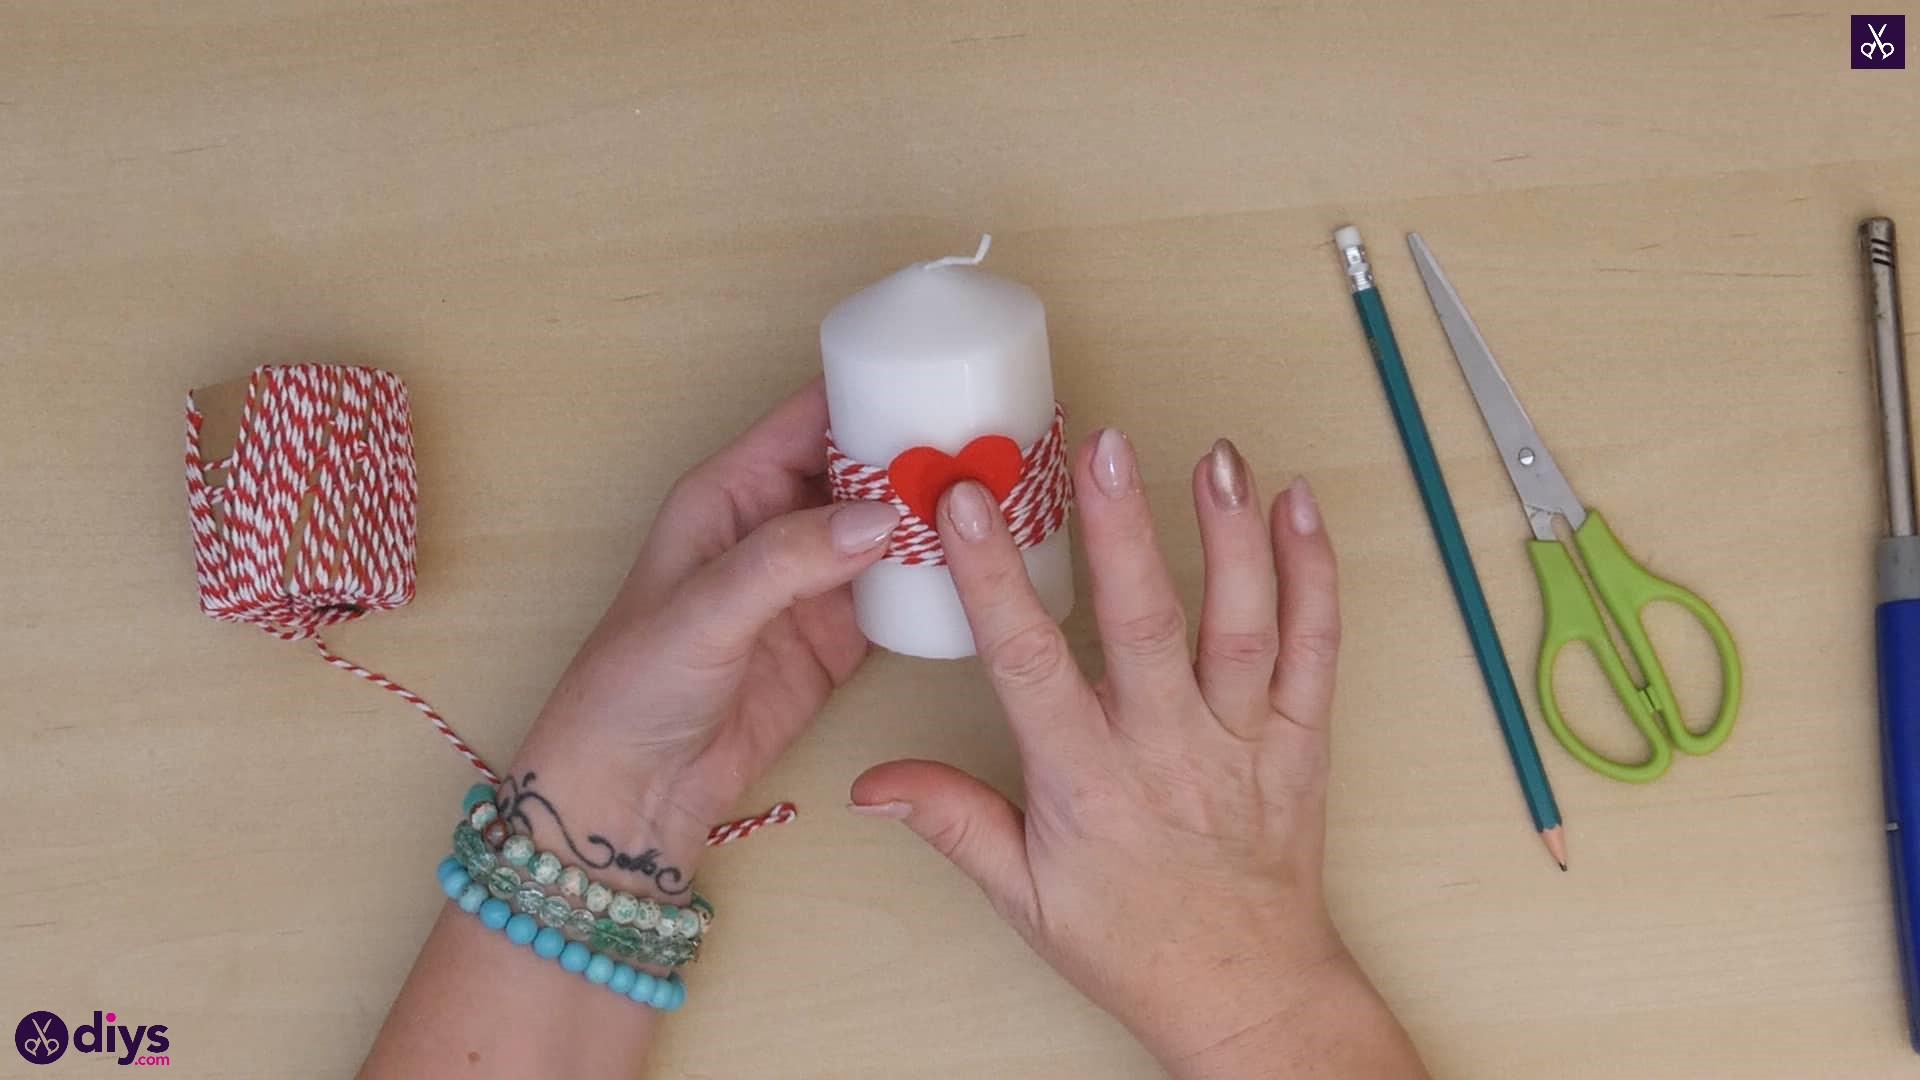 Diy valentine's candle red paper step 4a